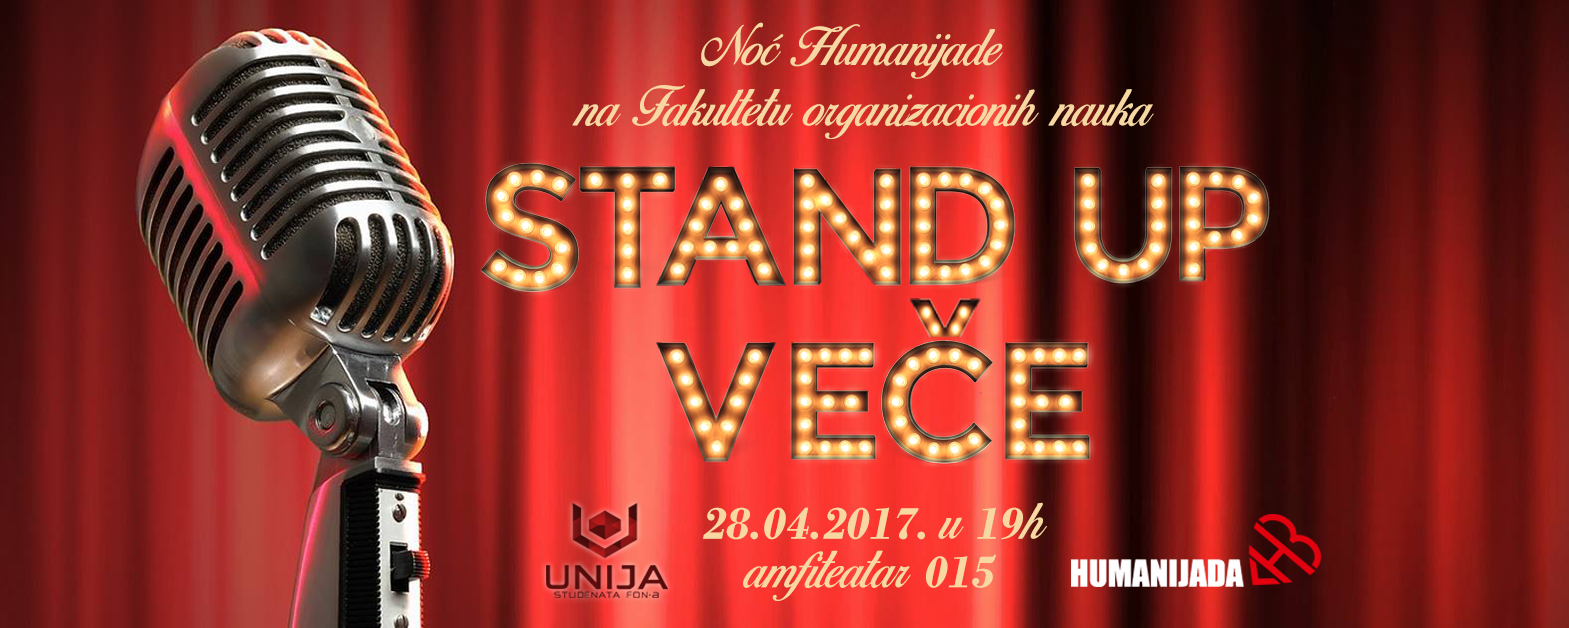 Humanitarno Stand up vece